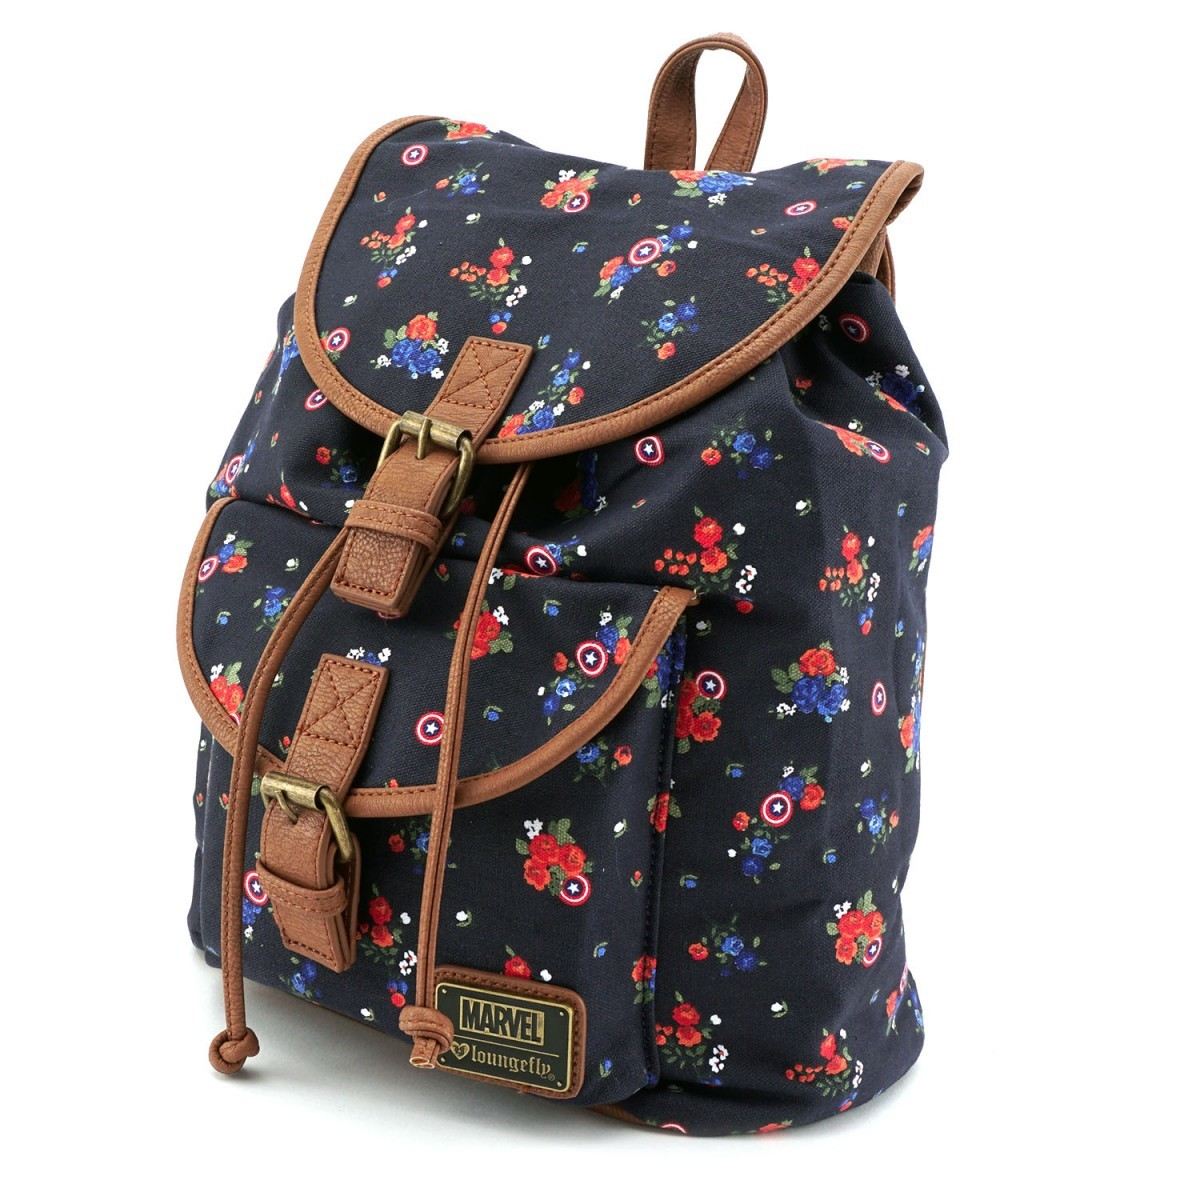 Loungefly Marvel Captain America Floral Print Backpack image